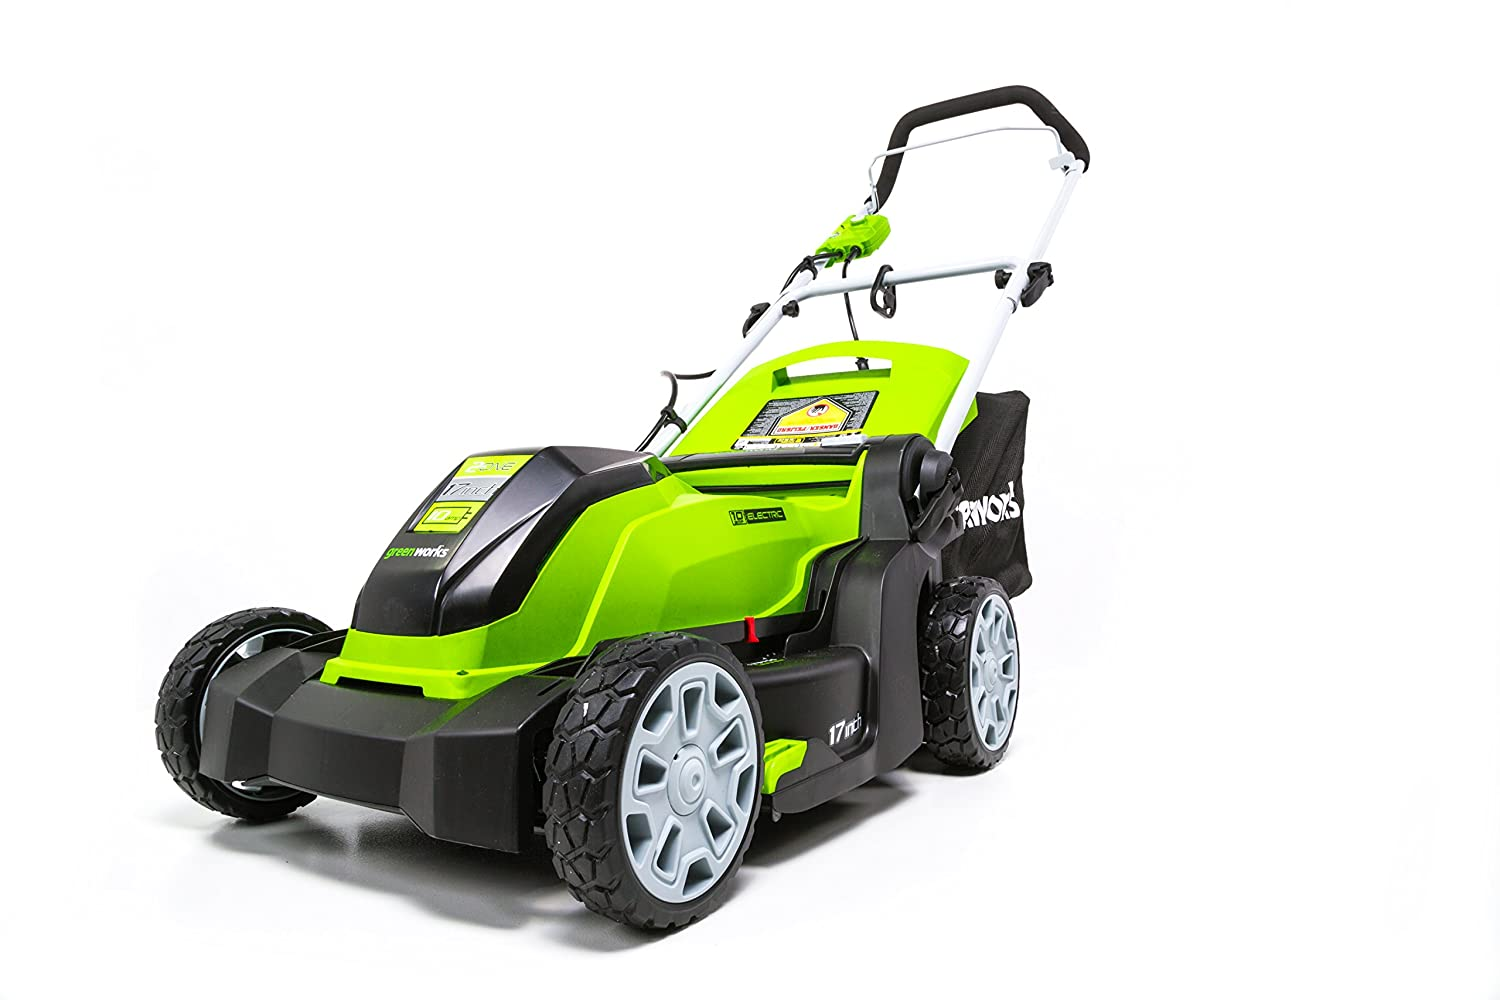 Greenworks 17-Inch 10 Amp Corded Lawn Mower MO10B00